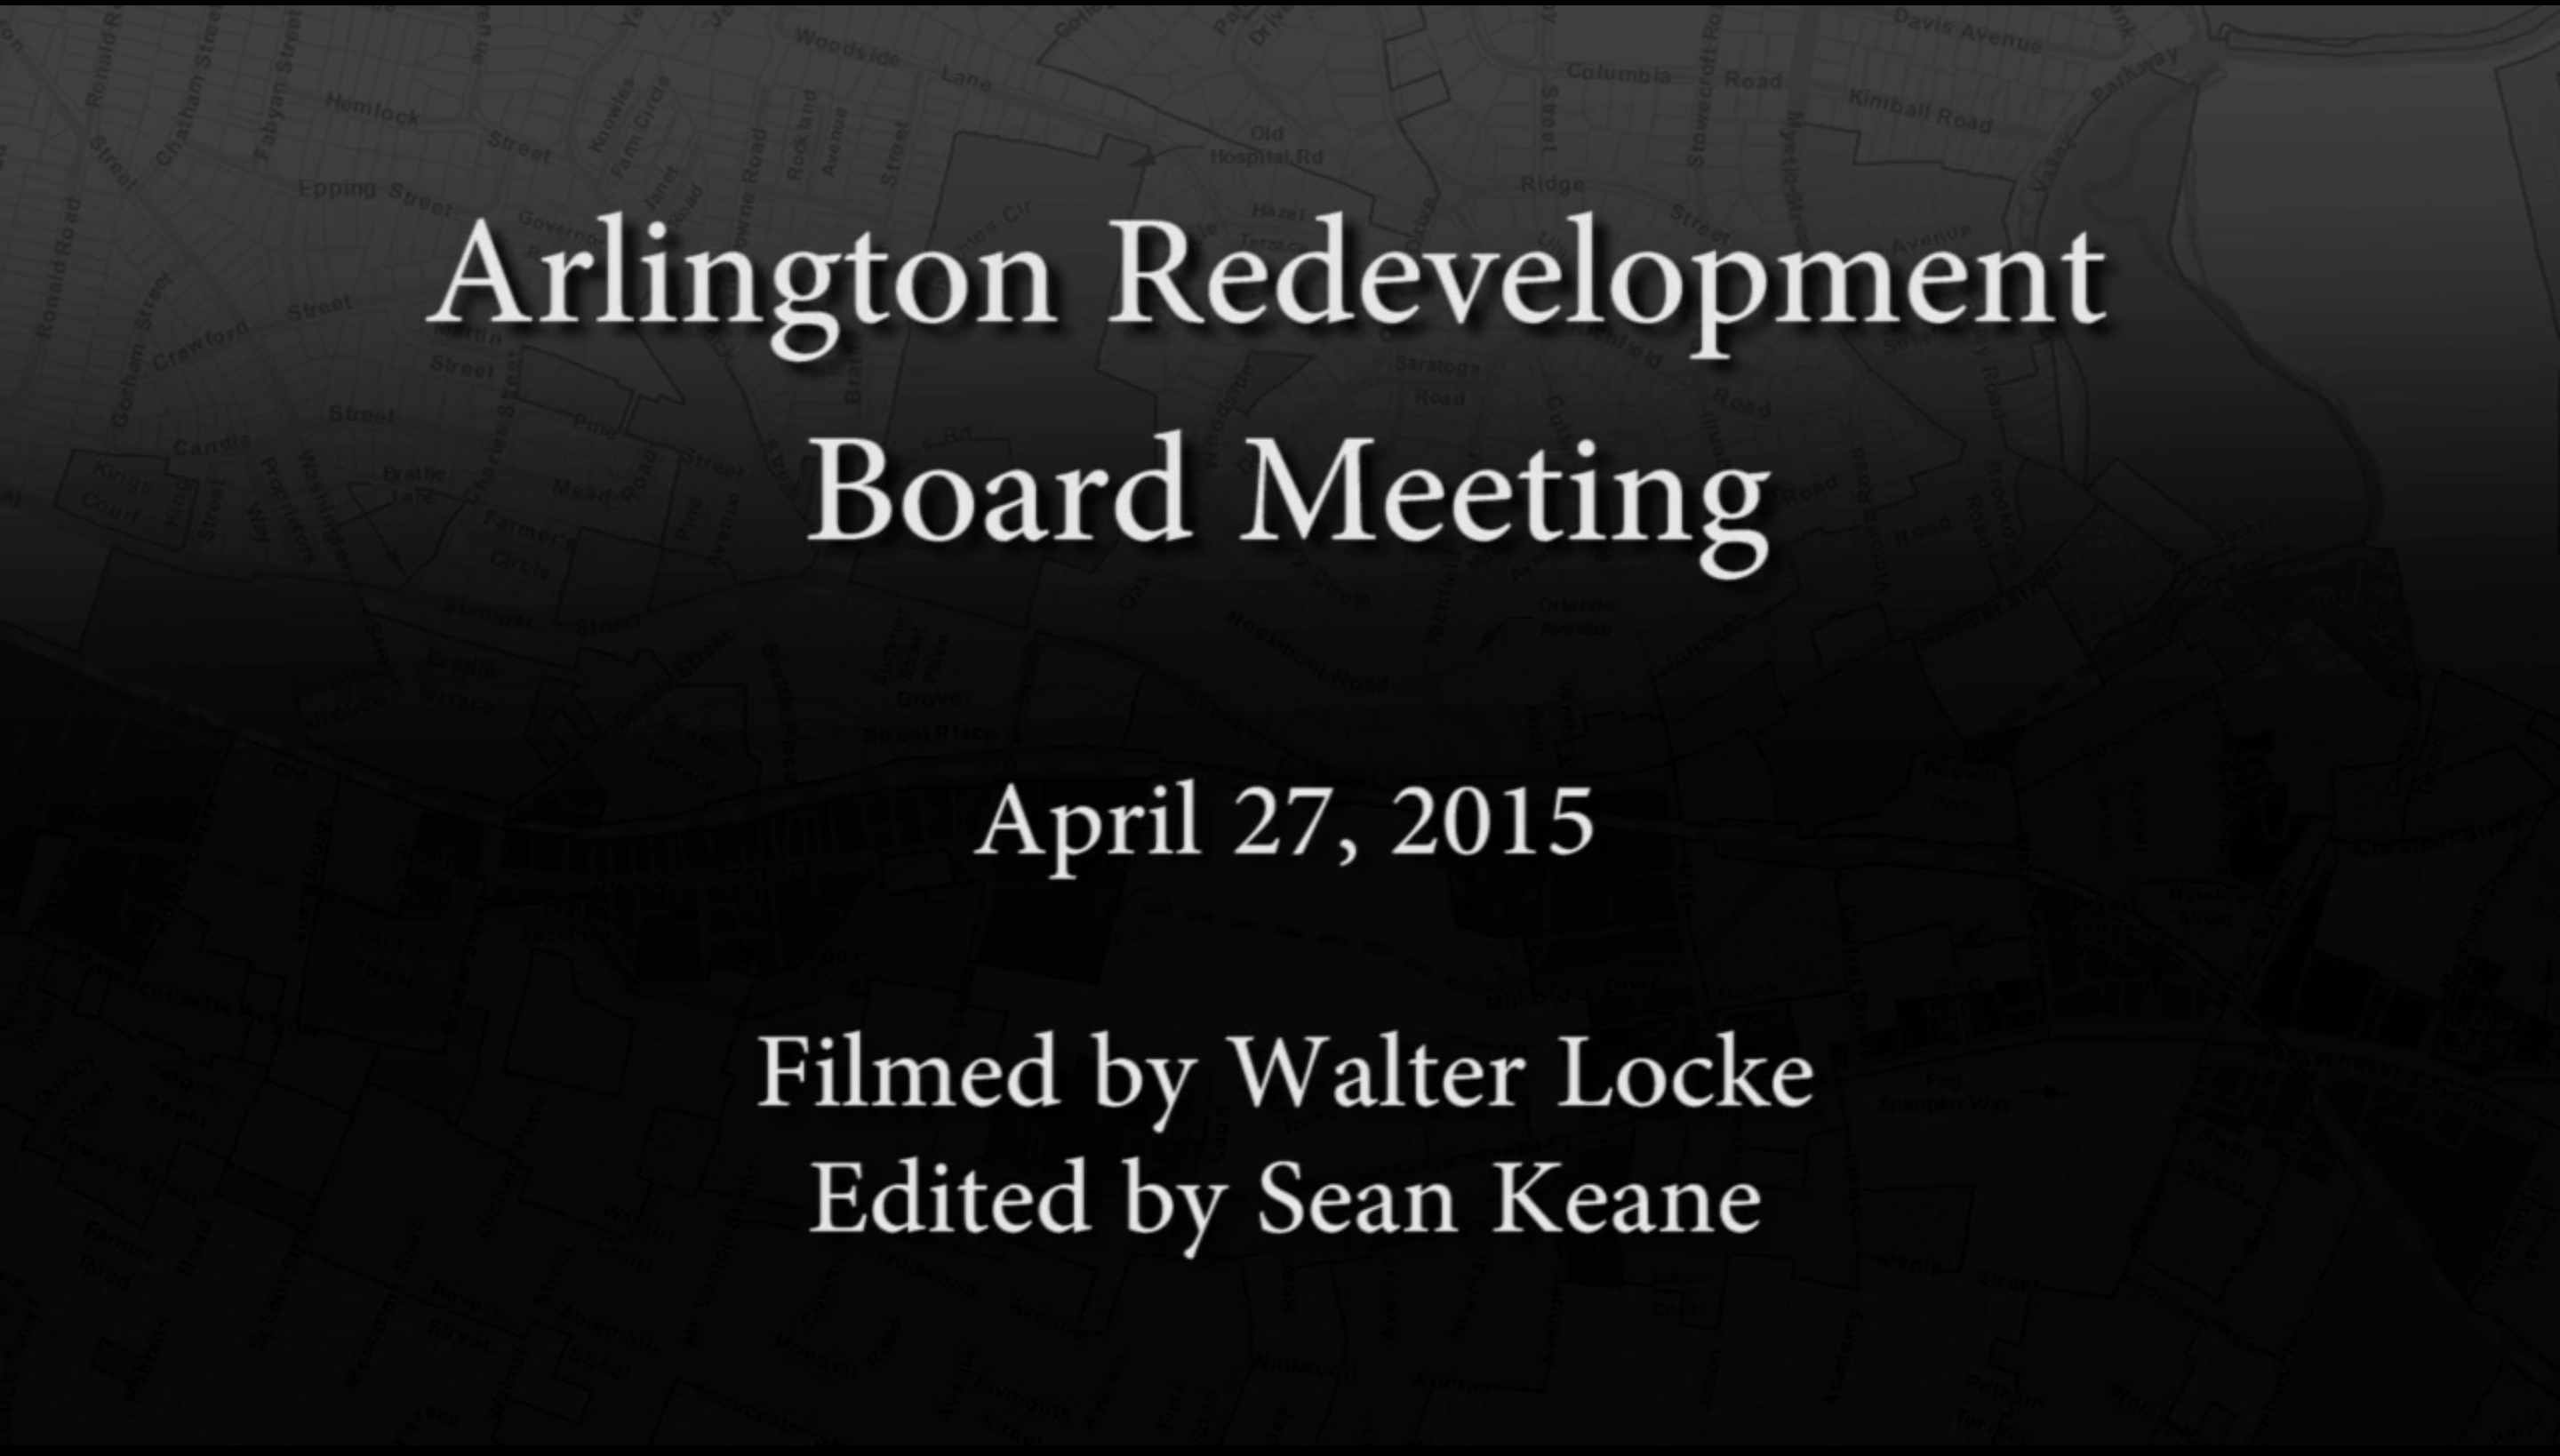 Redevelopment Board Meeting – April 27, 2015